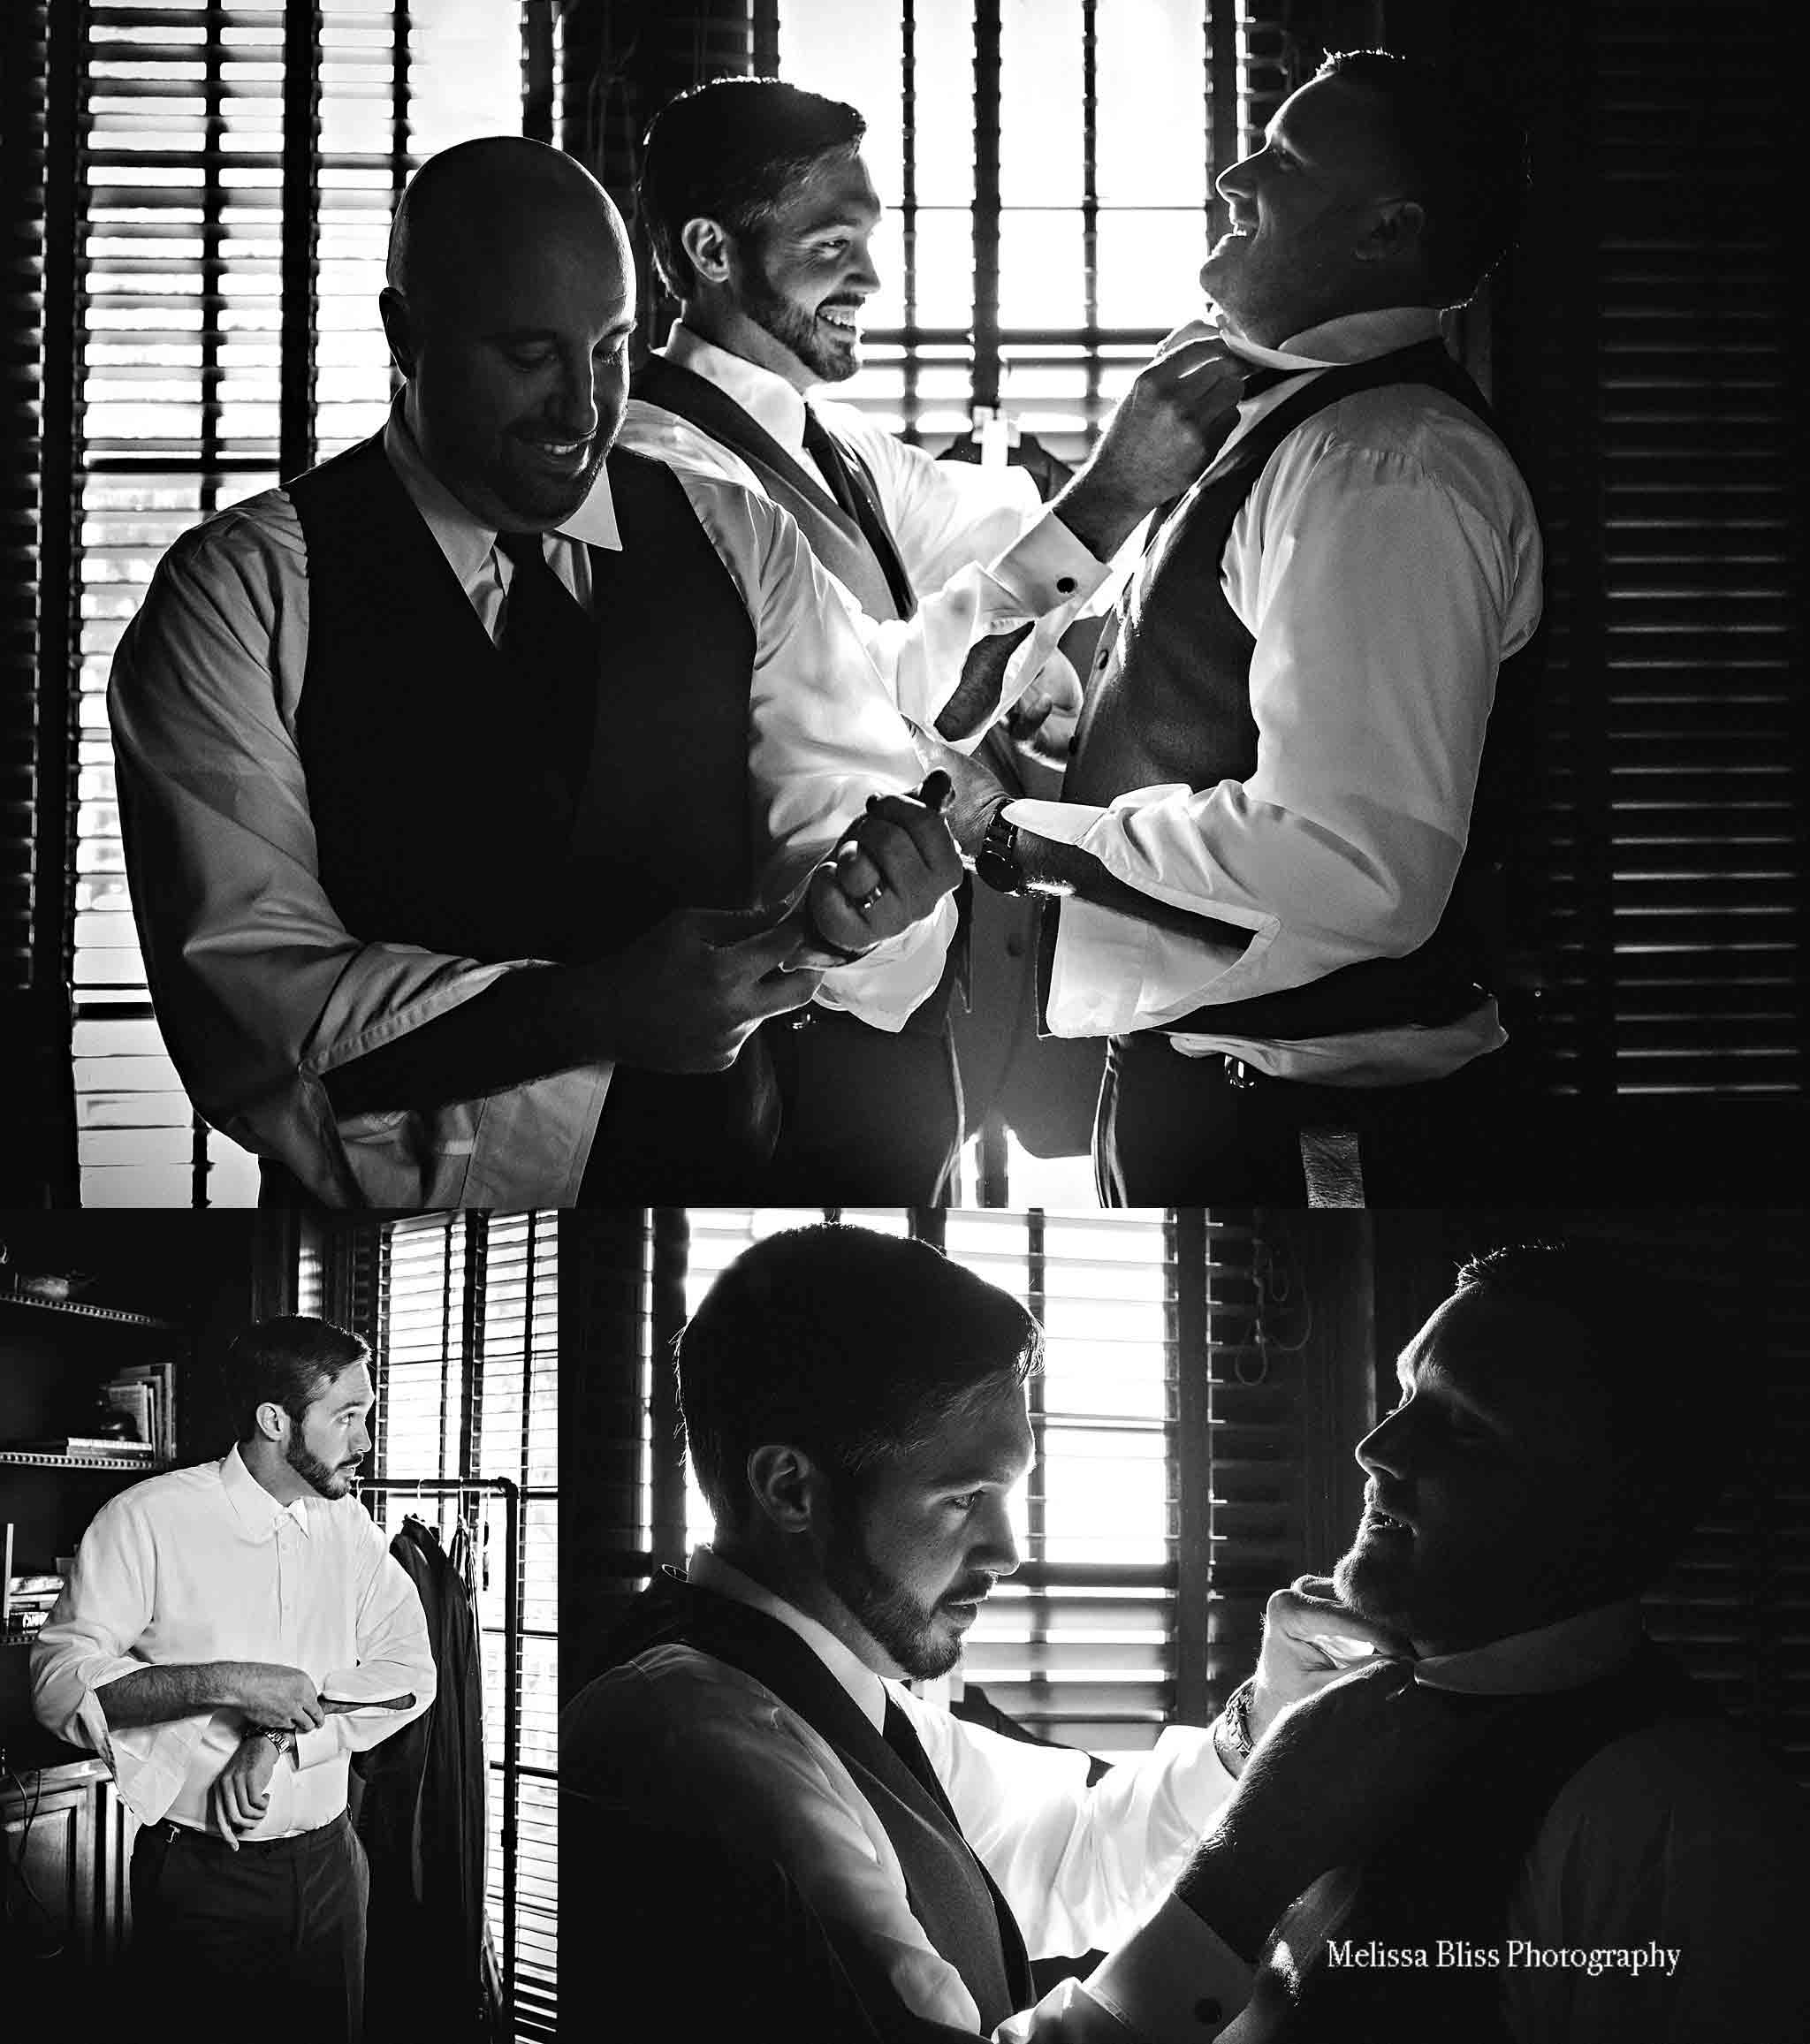 VA-wedding-photographer-melissa-bliss-photography-groomsmen-photos-veritas-vineyard-wedding-charlottesville-afton-lynchburg-photographer.jpg